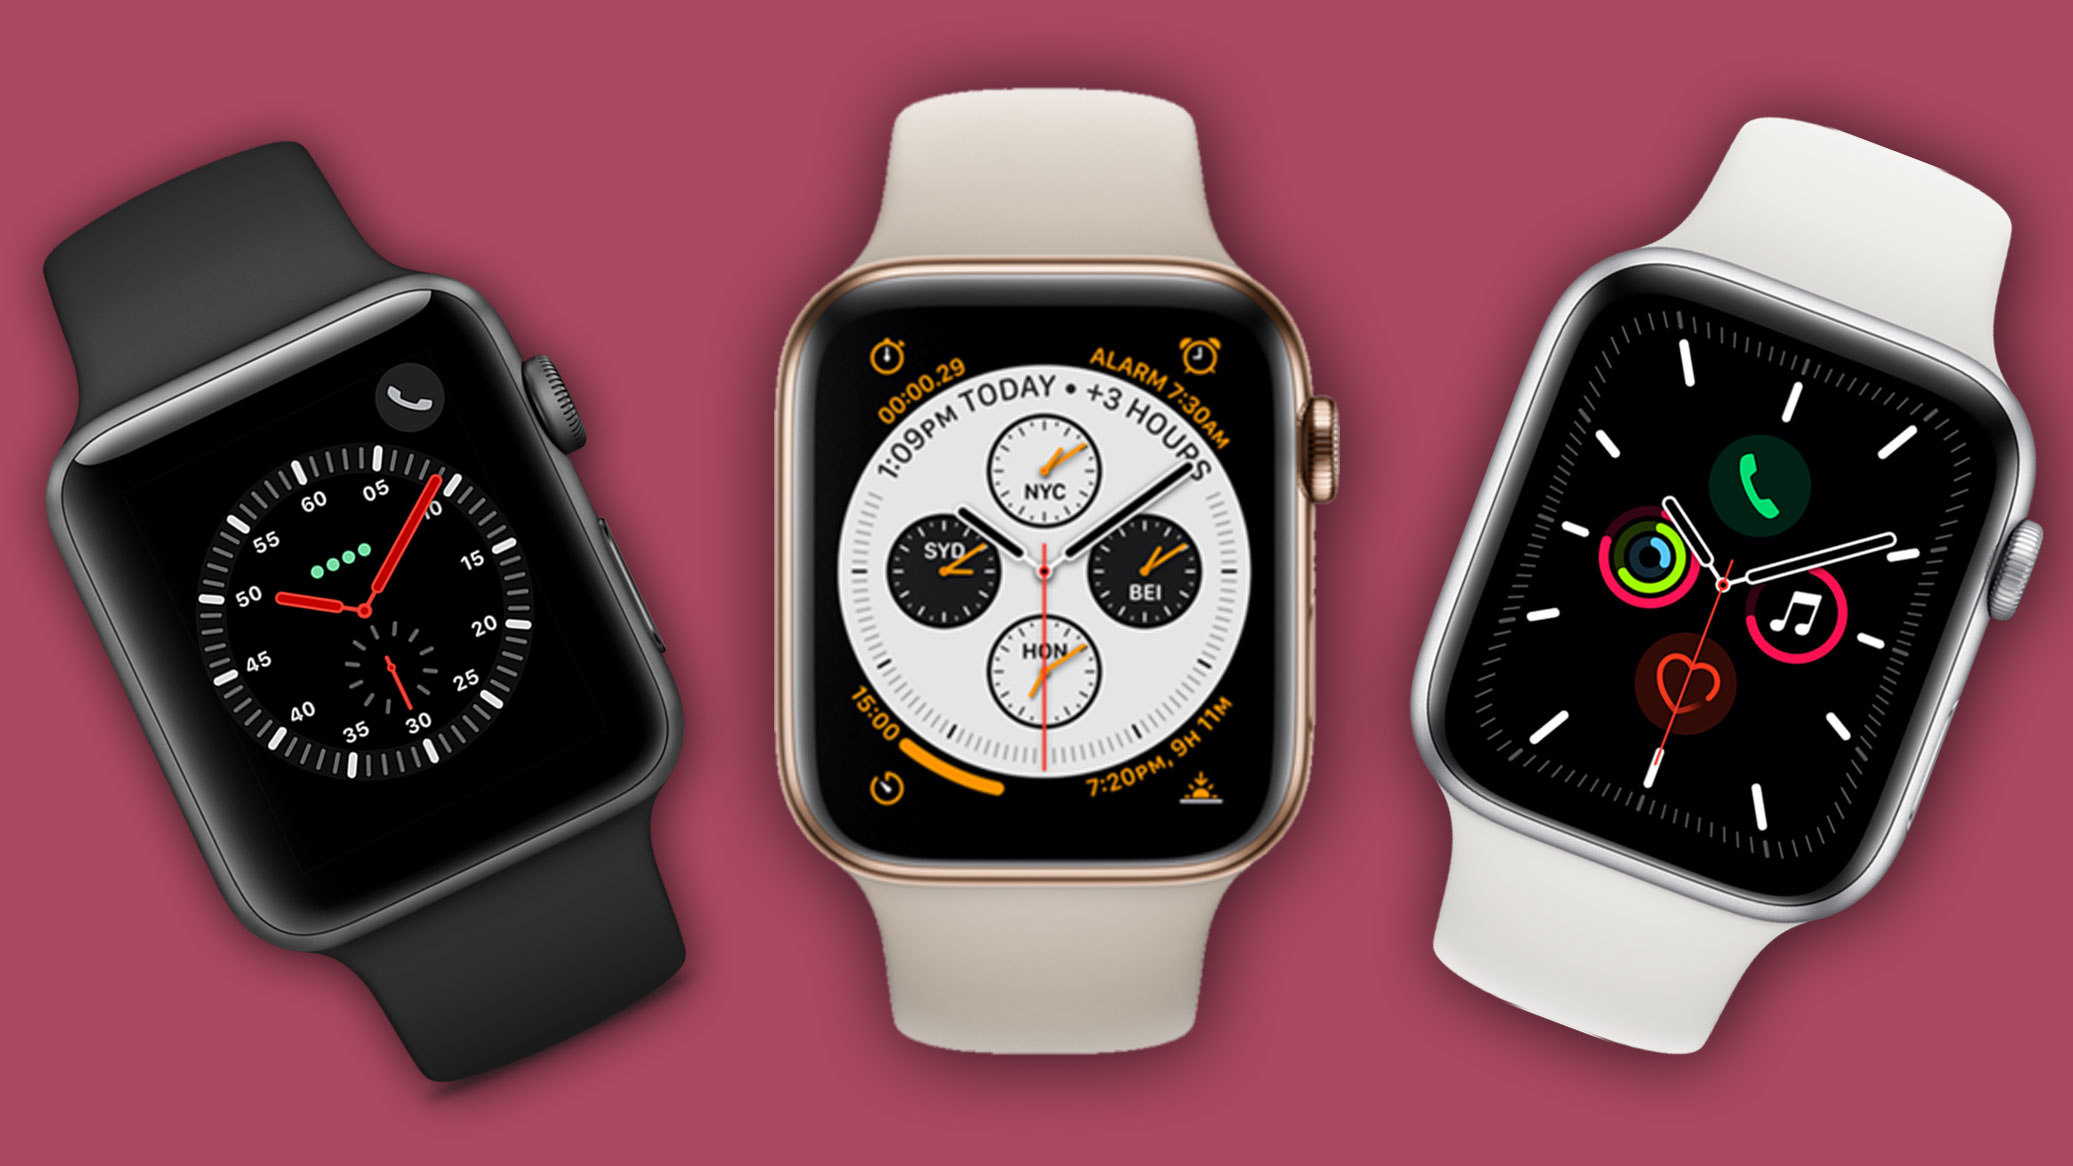 15 best tips and tricks for Apple Watch